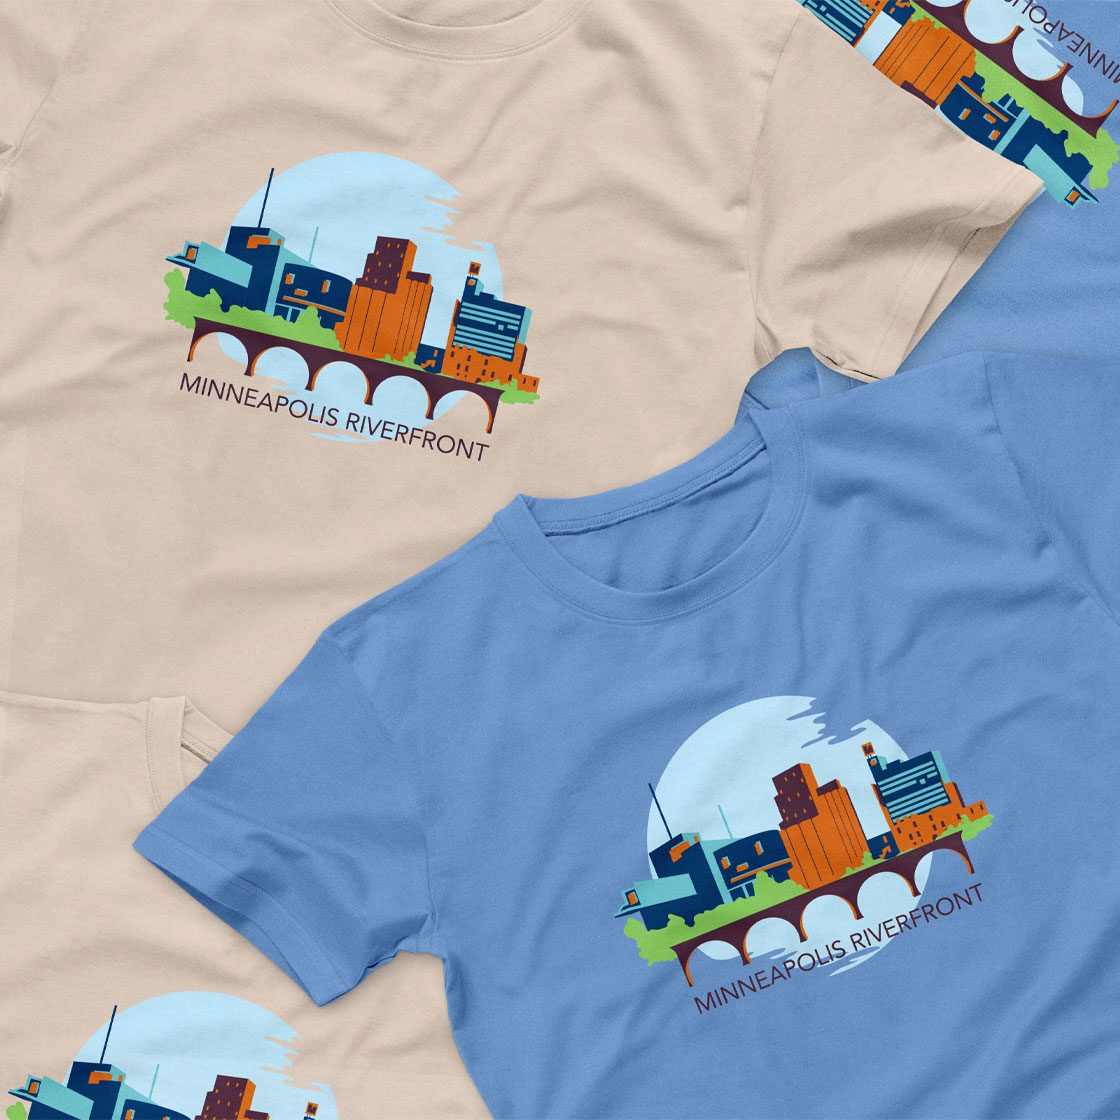 T shirts with an illustration of a skyline with the words minneapolis riverfront